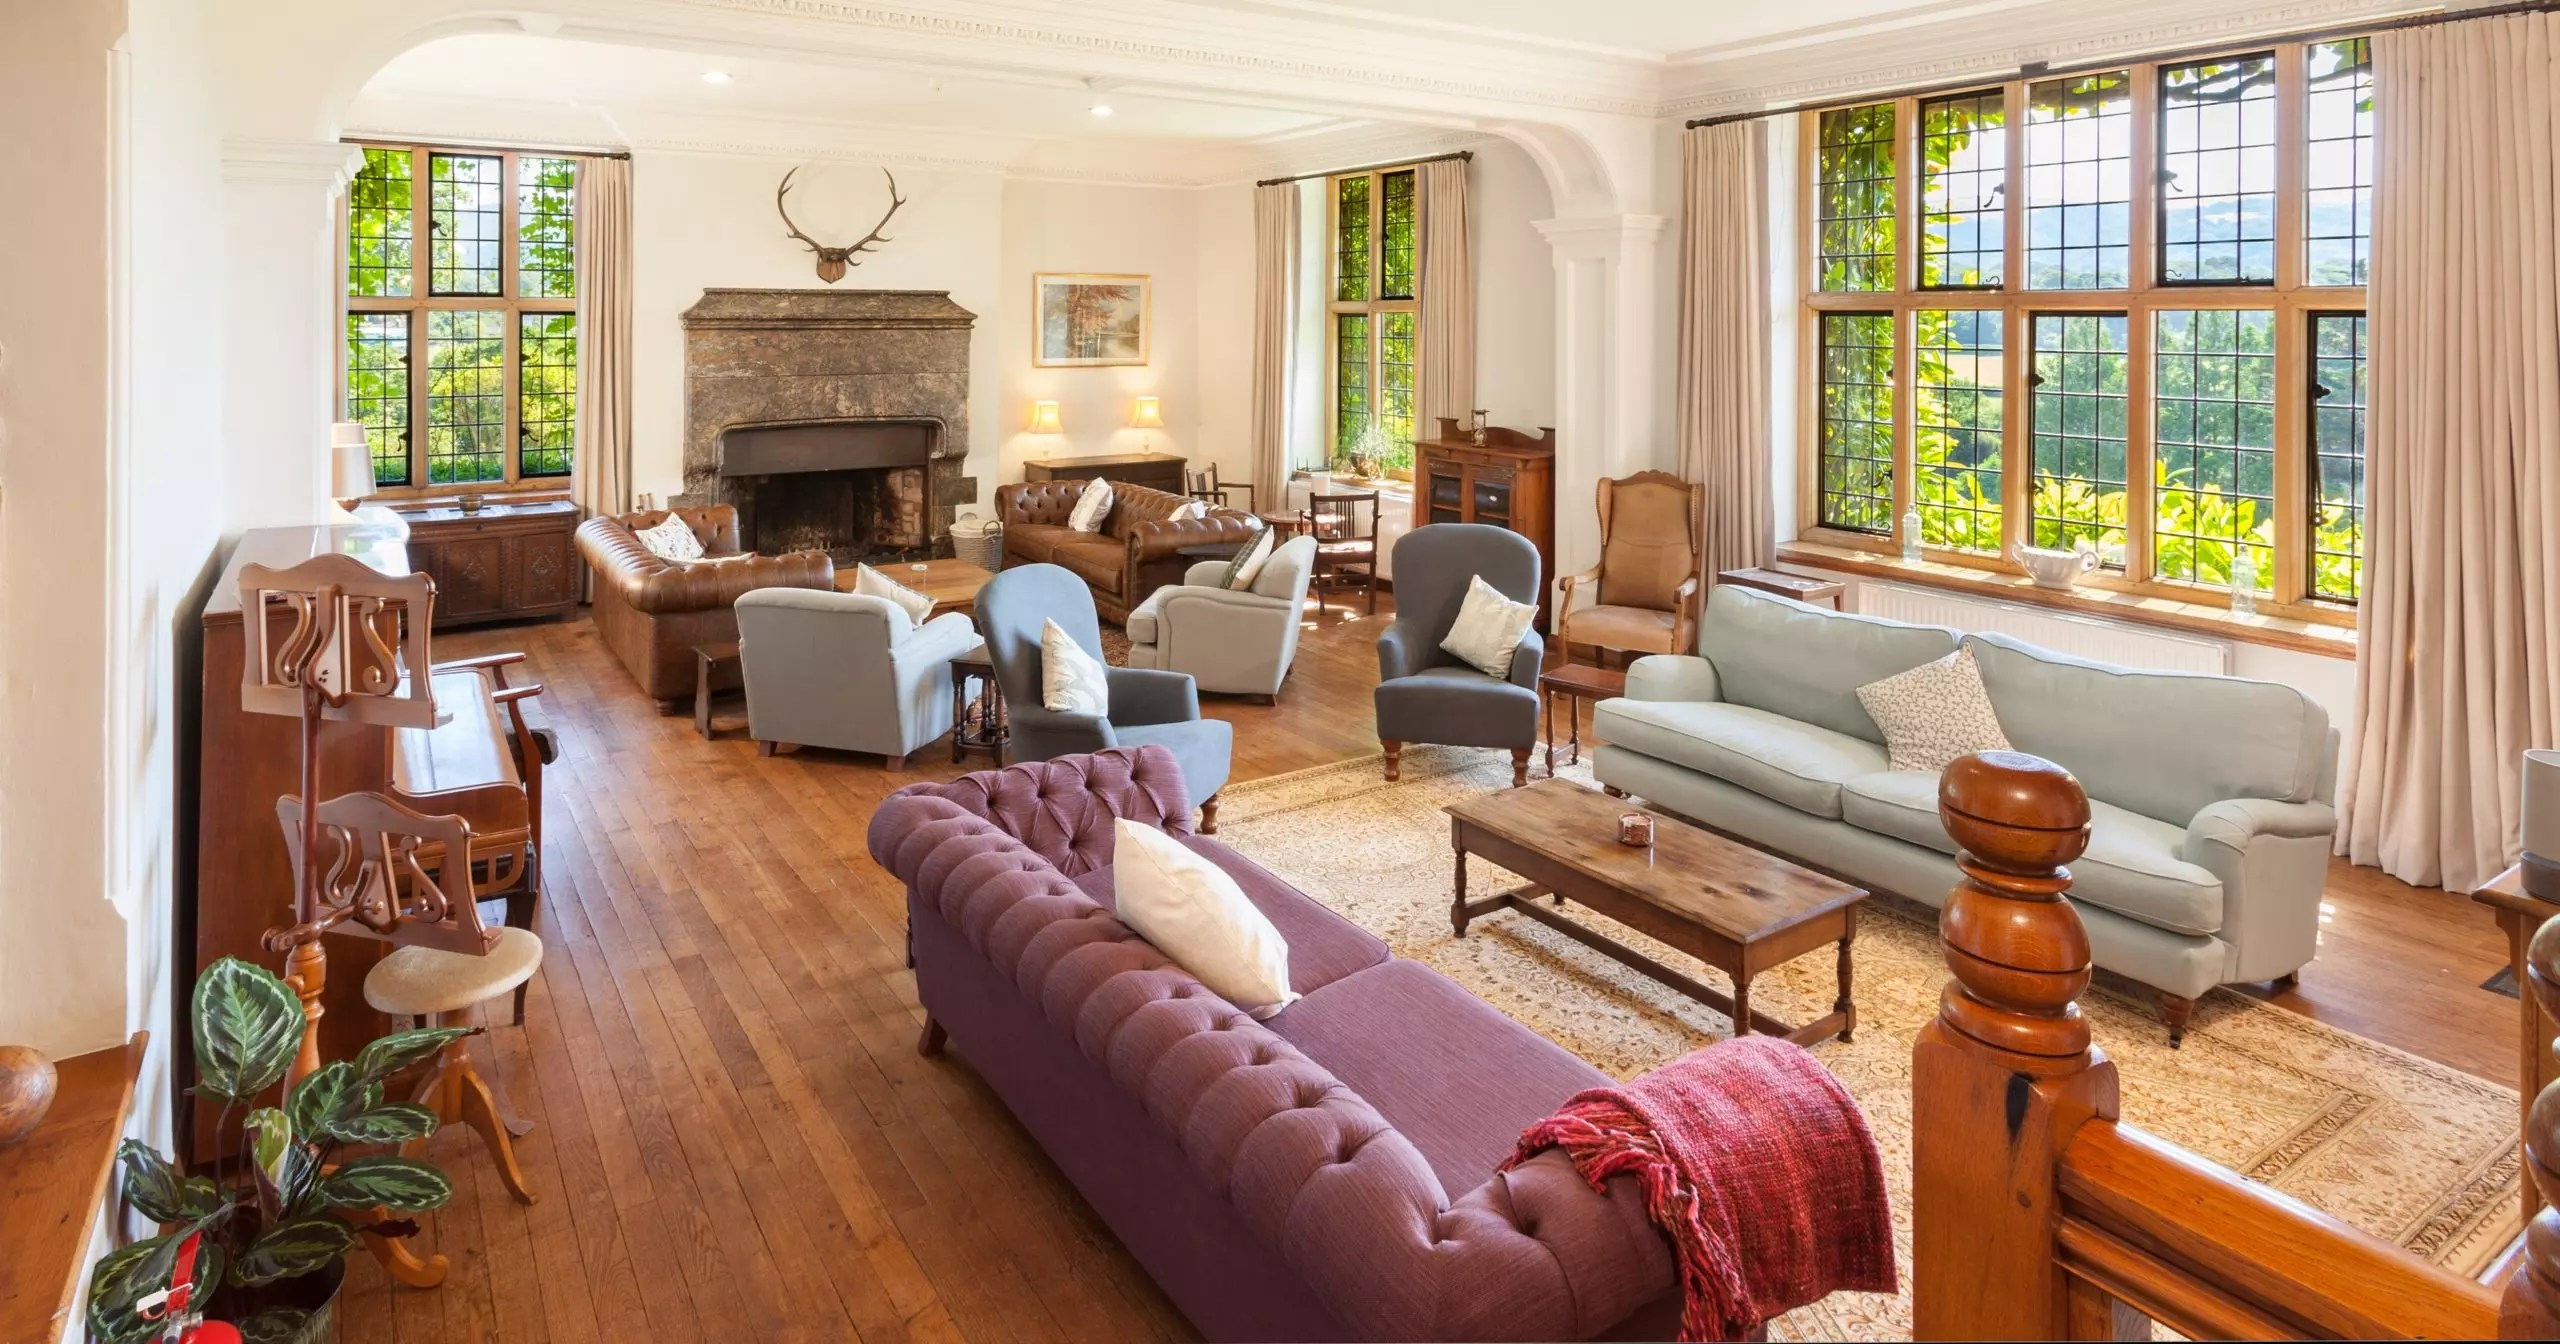 Bossington Hall lounge